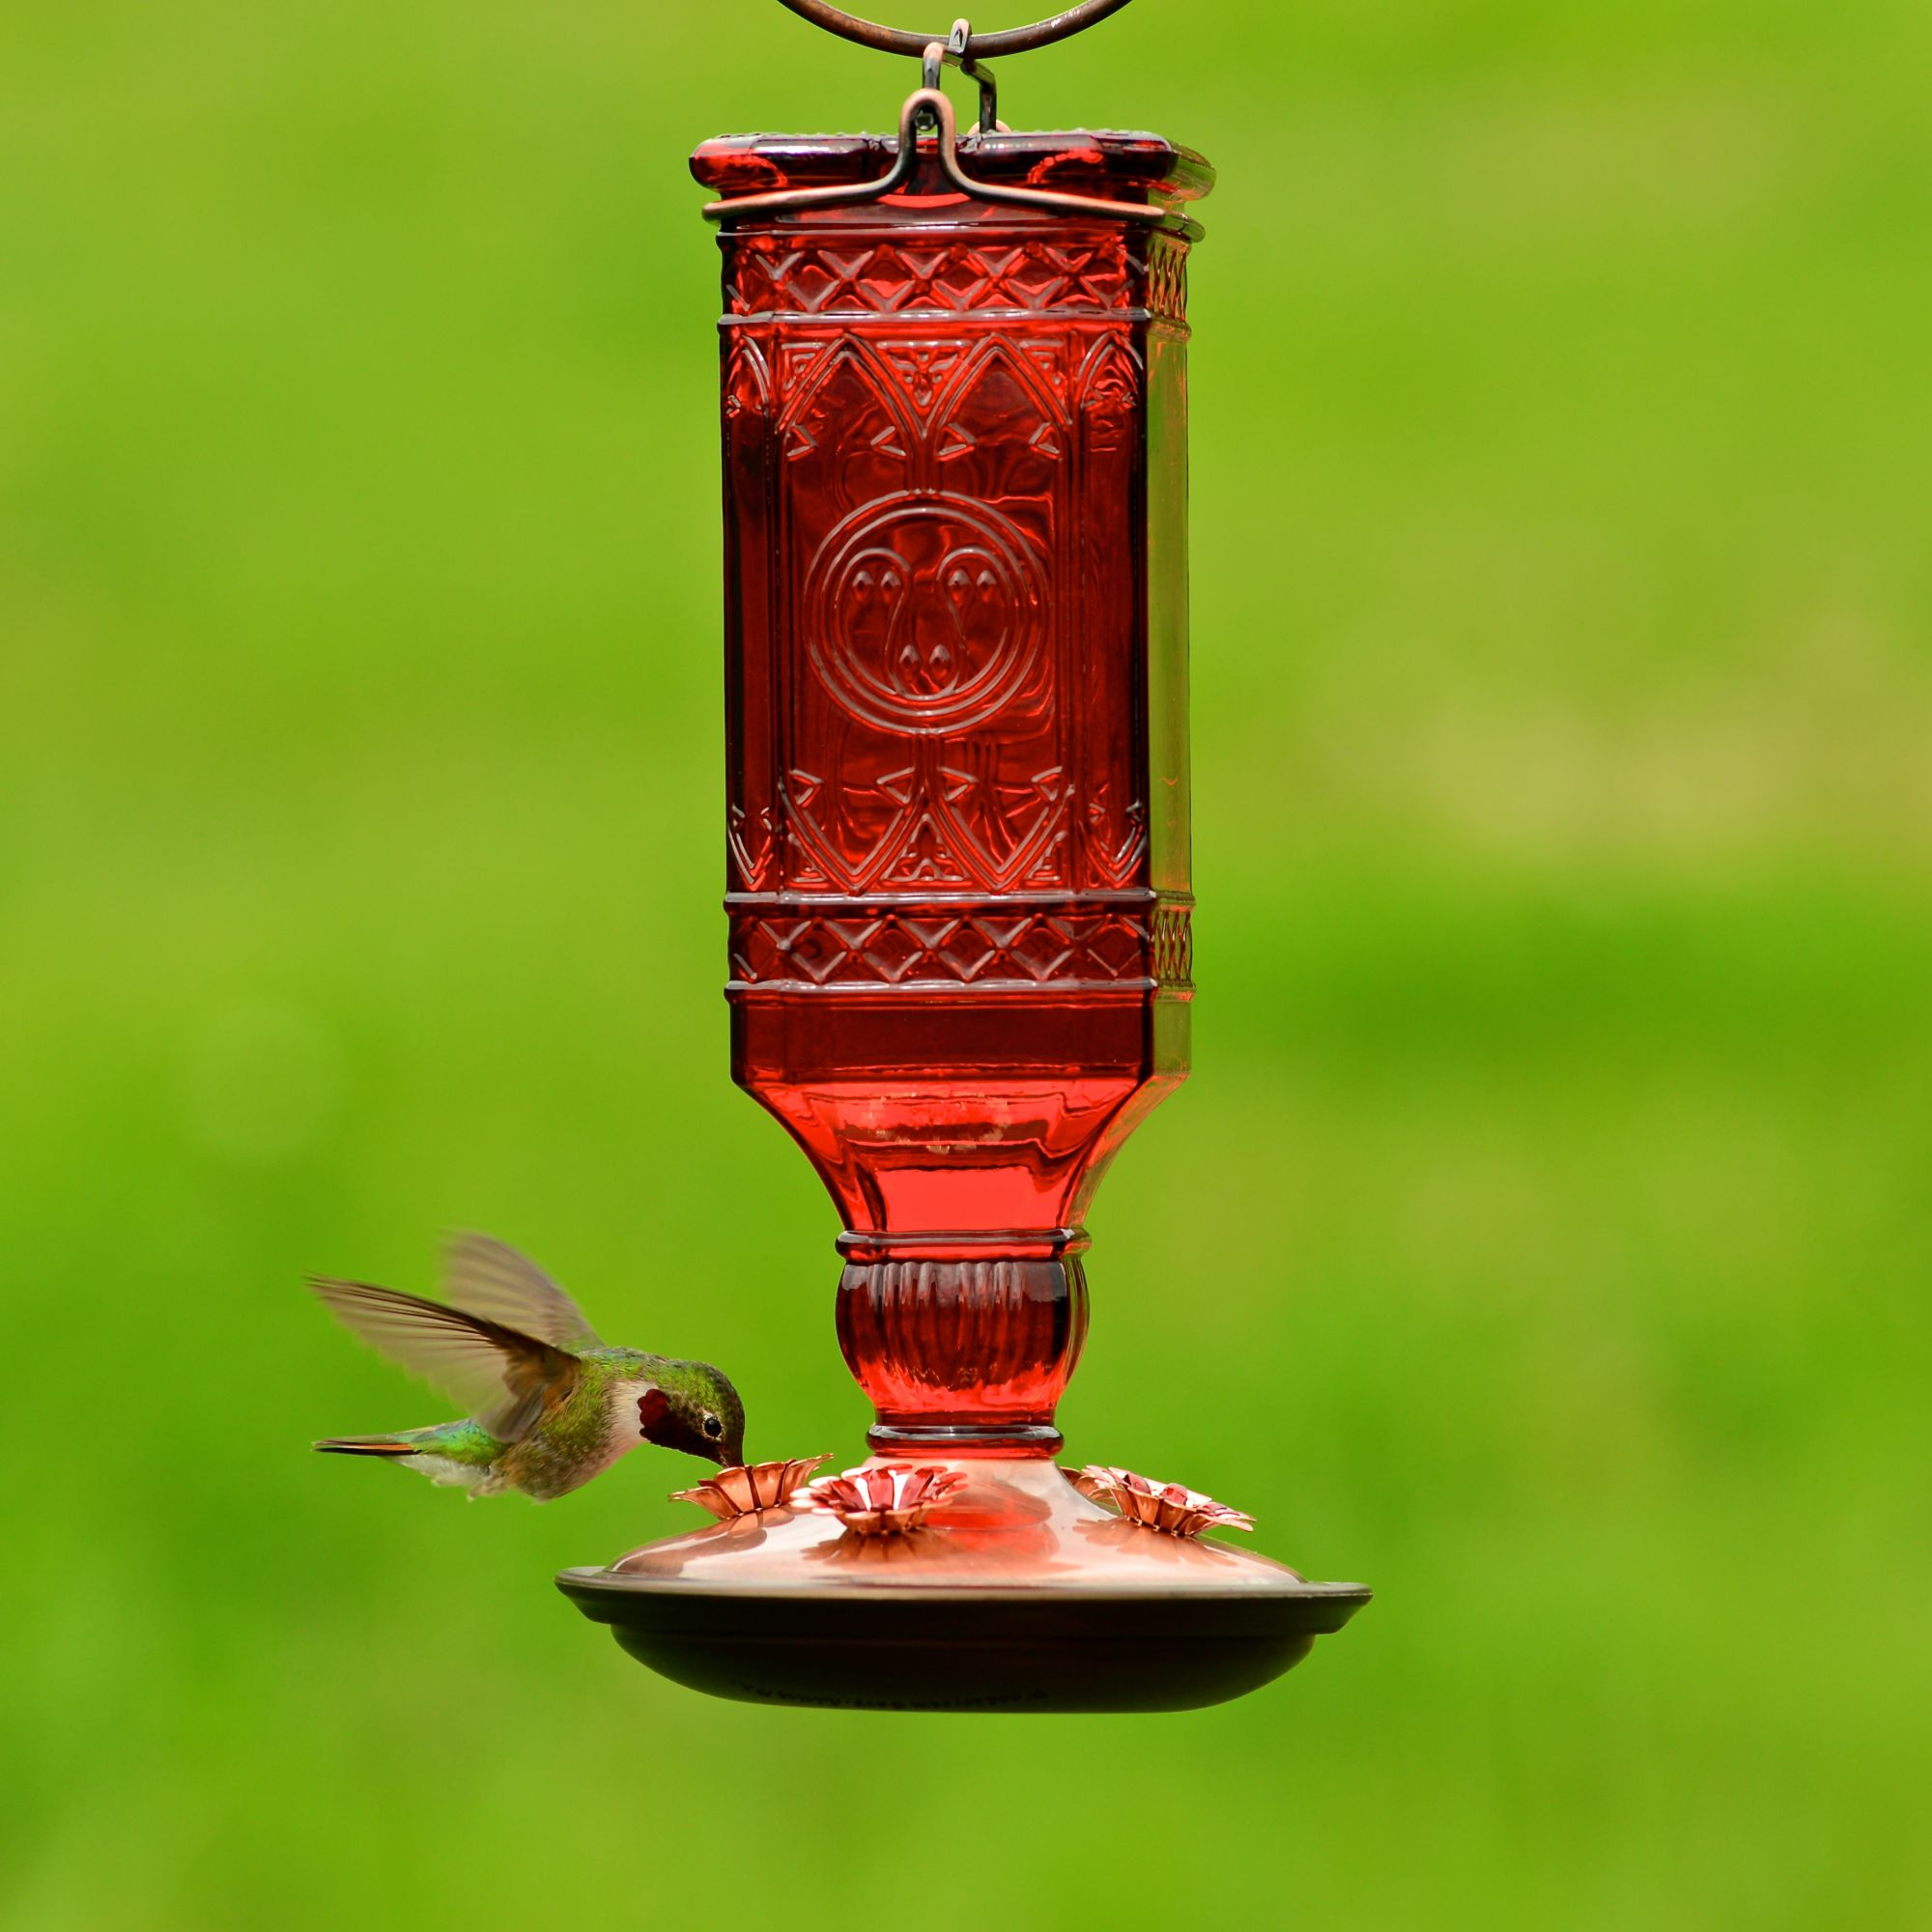 hummingbird petal bf feeder us pet feeders rose perky model decorative